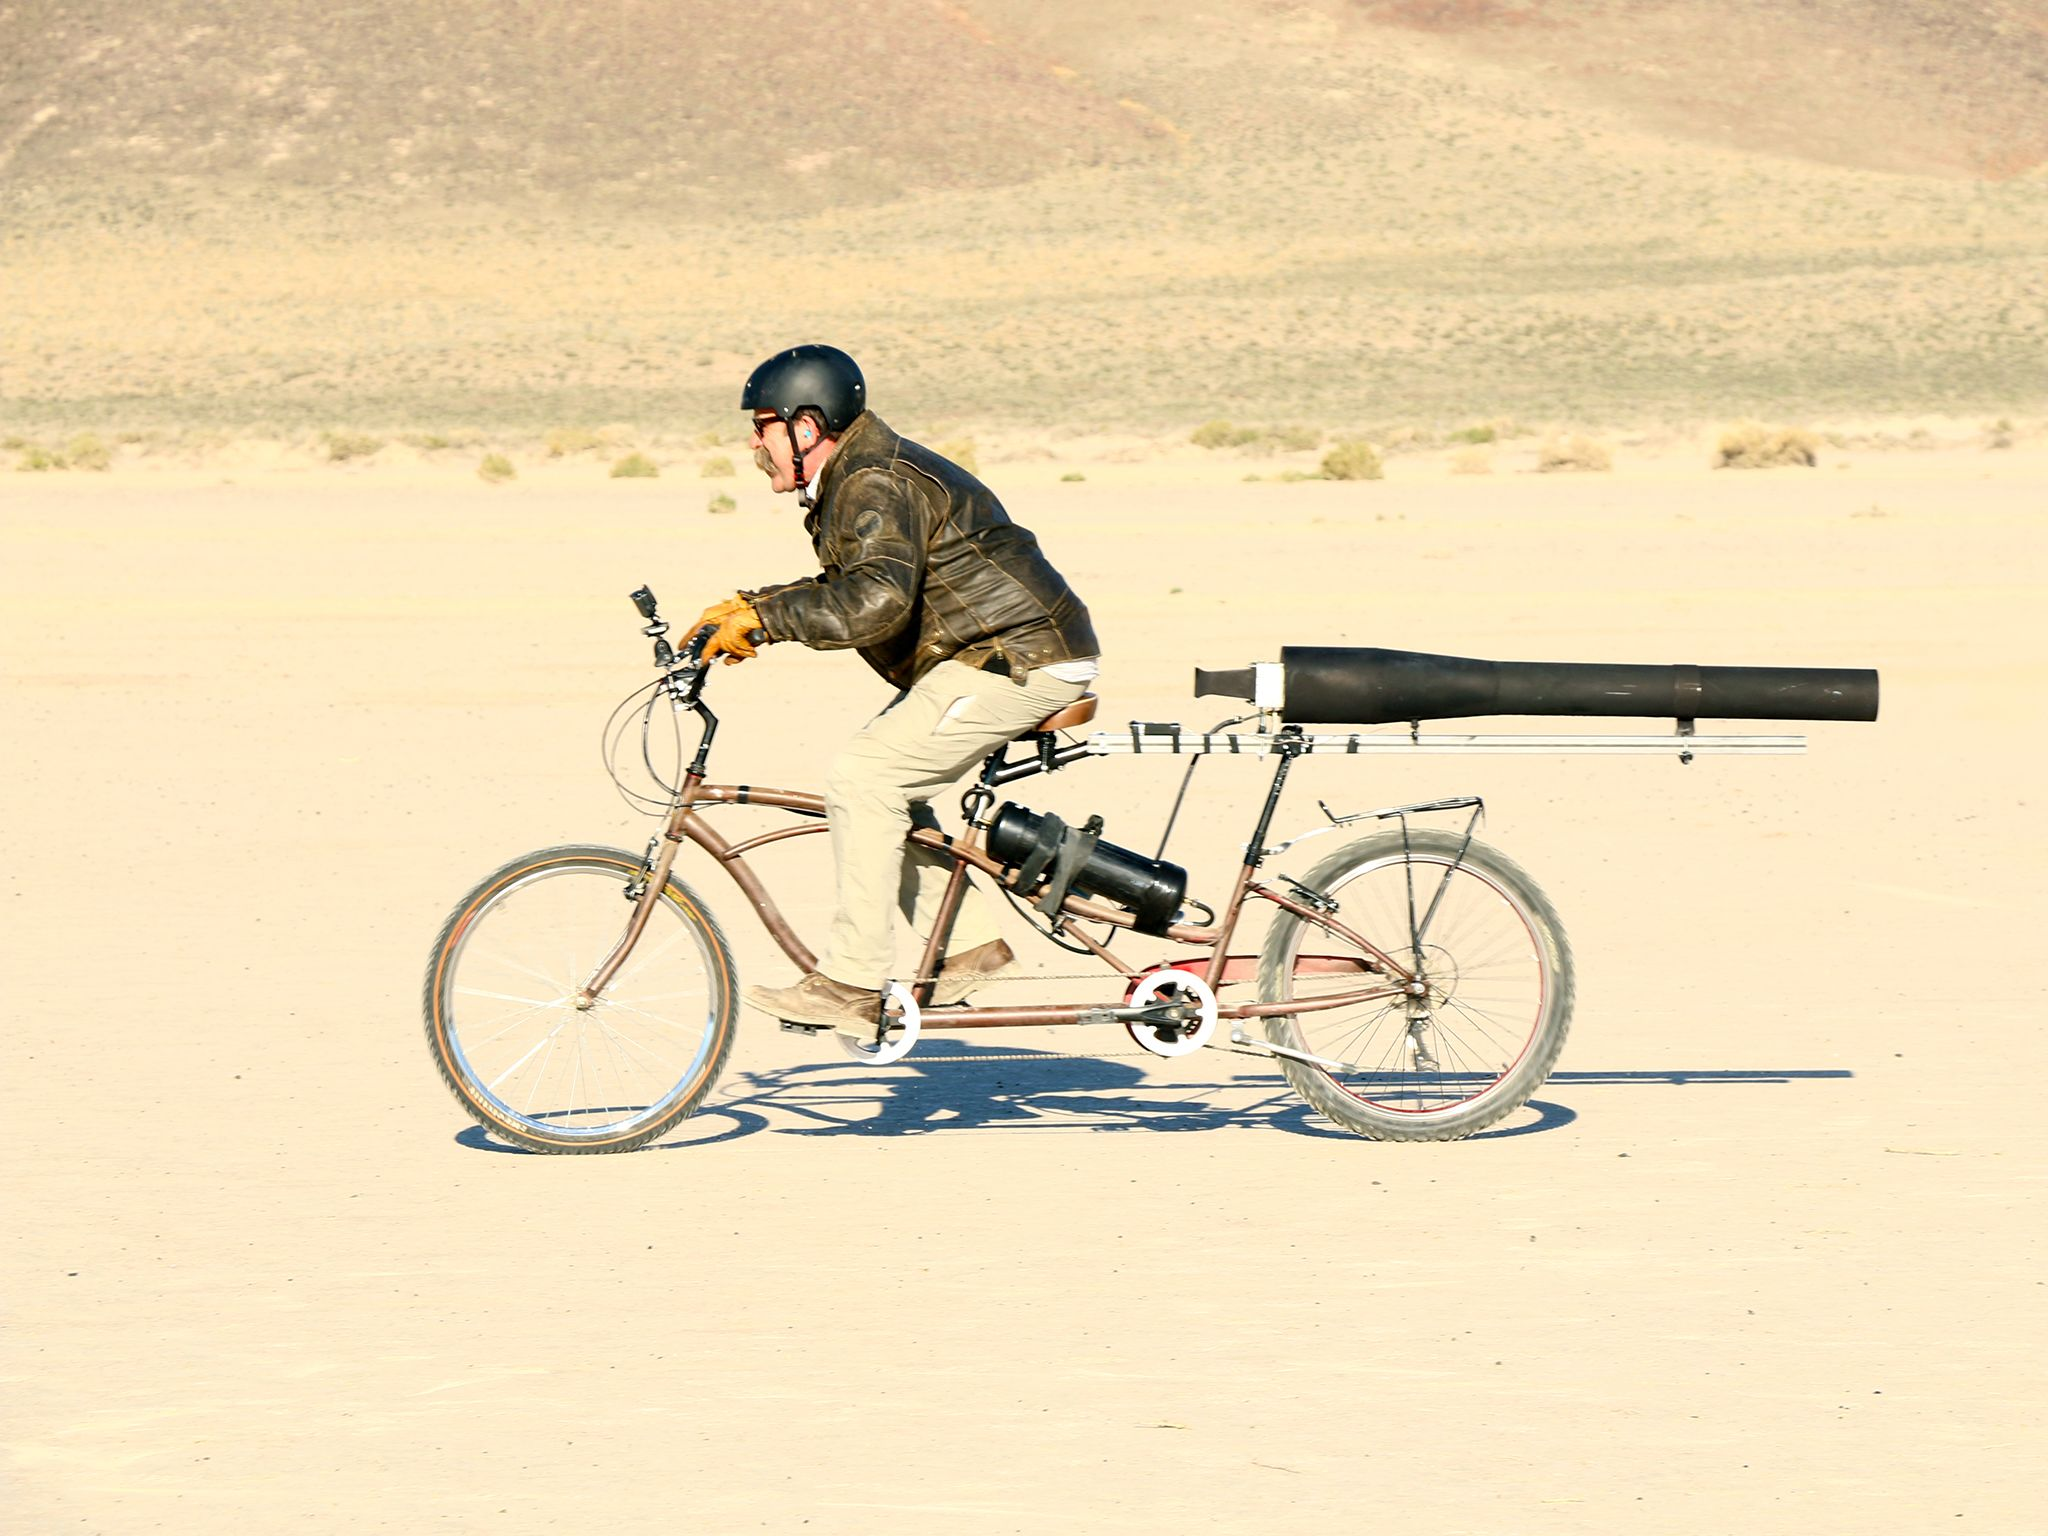 Fallon, Nev.:  Engineer, Dick Strawbridge tests his rocket powered bike. This image is from... [Photo of the day - 十二月 2015]